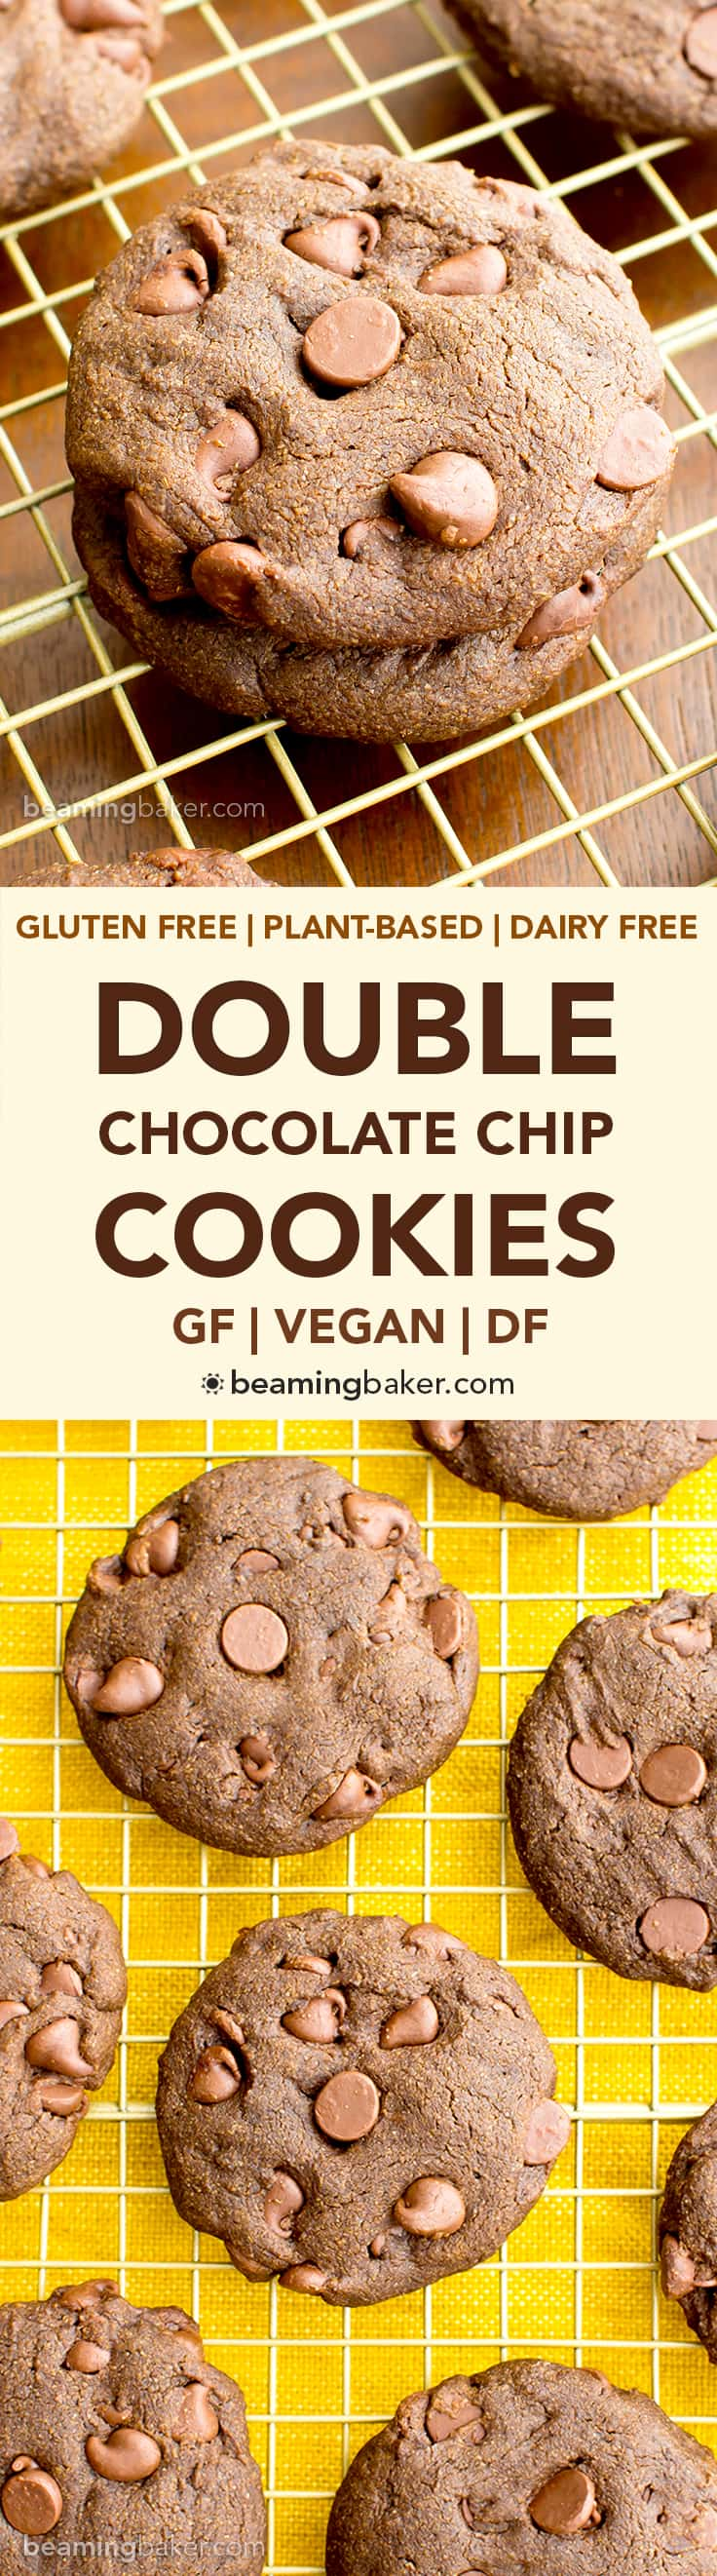 Vegan Double Chocolate Chip Cookies (V, GF, DF): an easy recipe for soft, decadent chocolate cookies packed with chocolate chips. #Vegan #GlutenFree #DairyFree | BeamingBaker.com